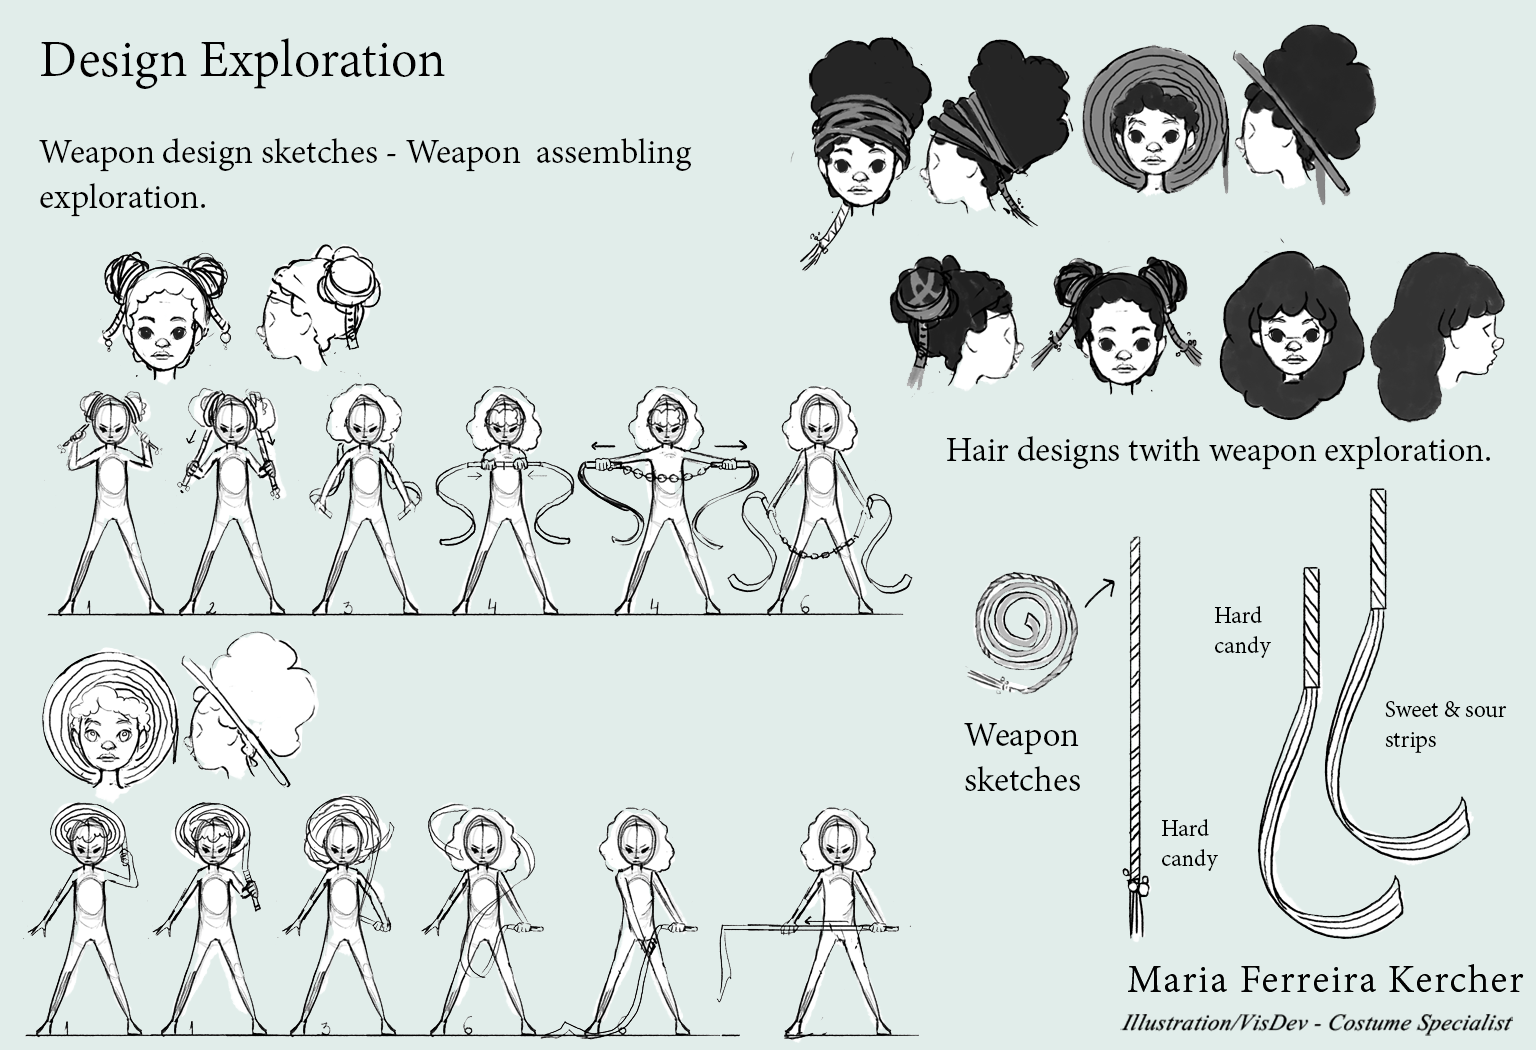 Hair and Weapon Exploration